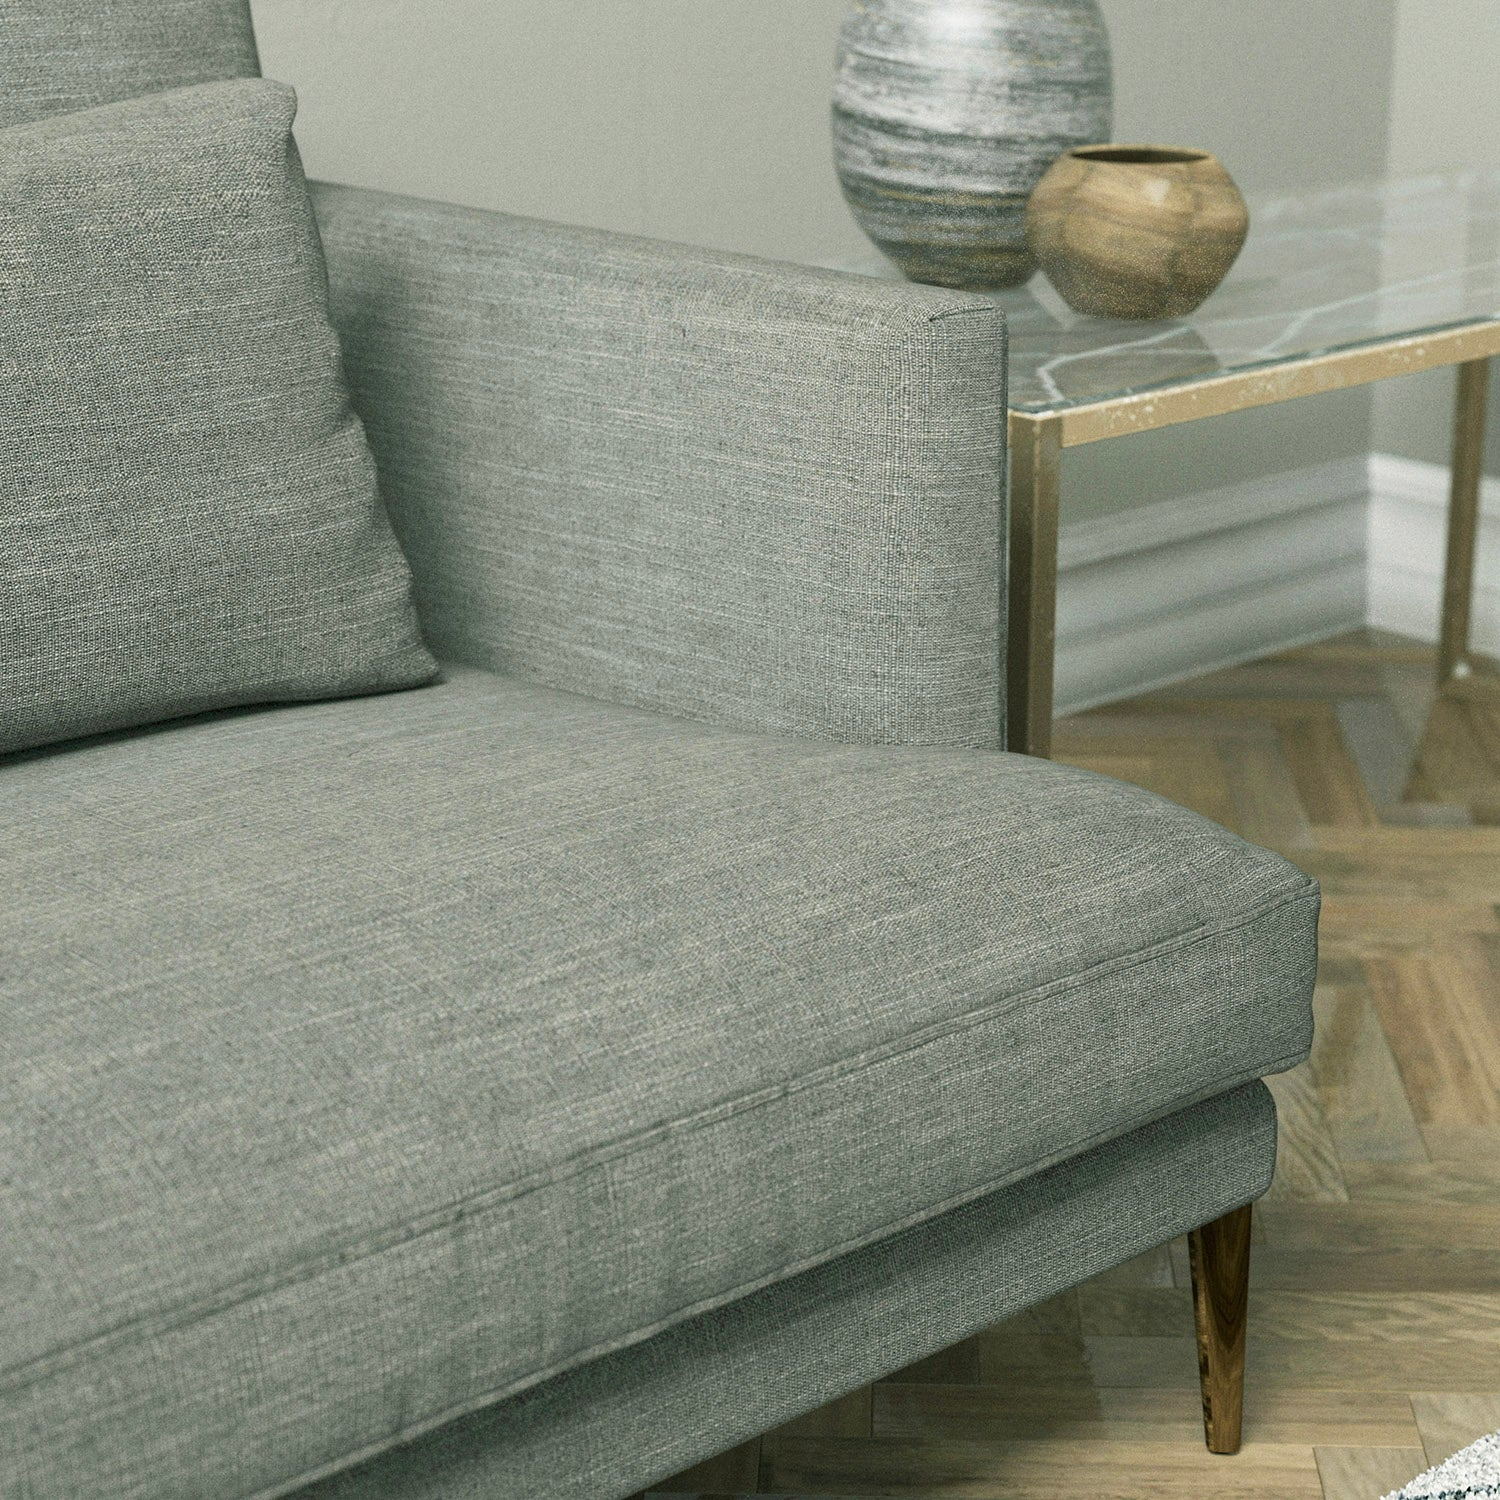 Sofa upholstered in a grey linen mix fabric